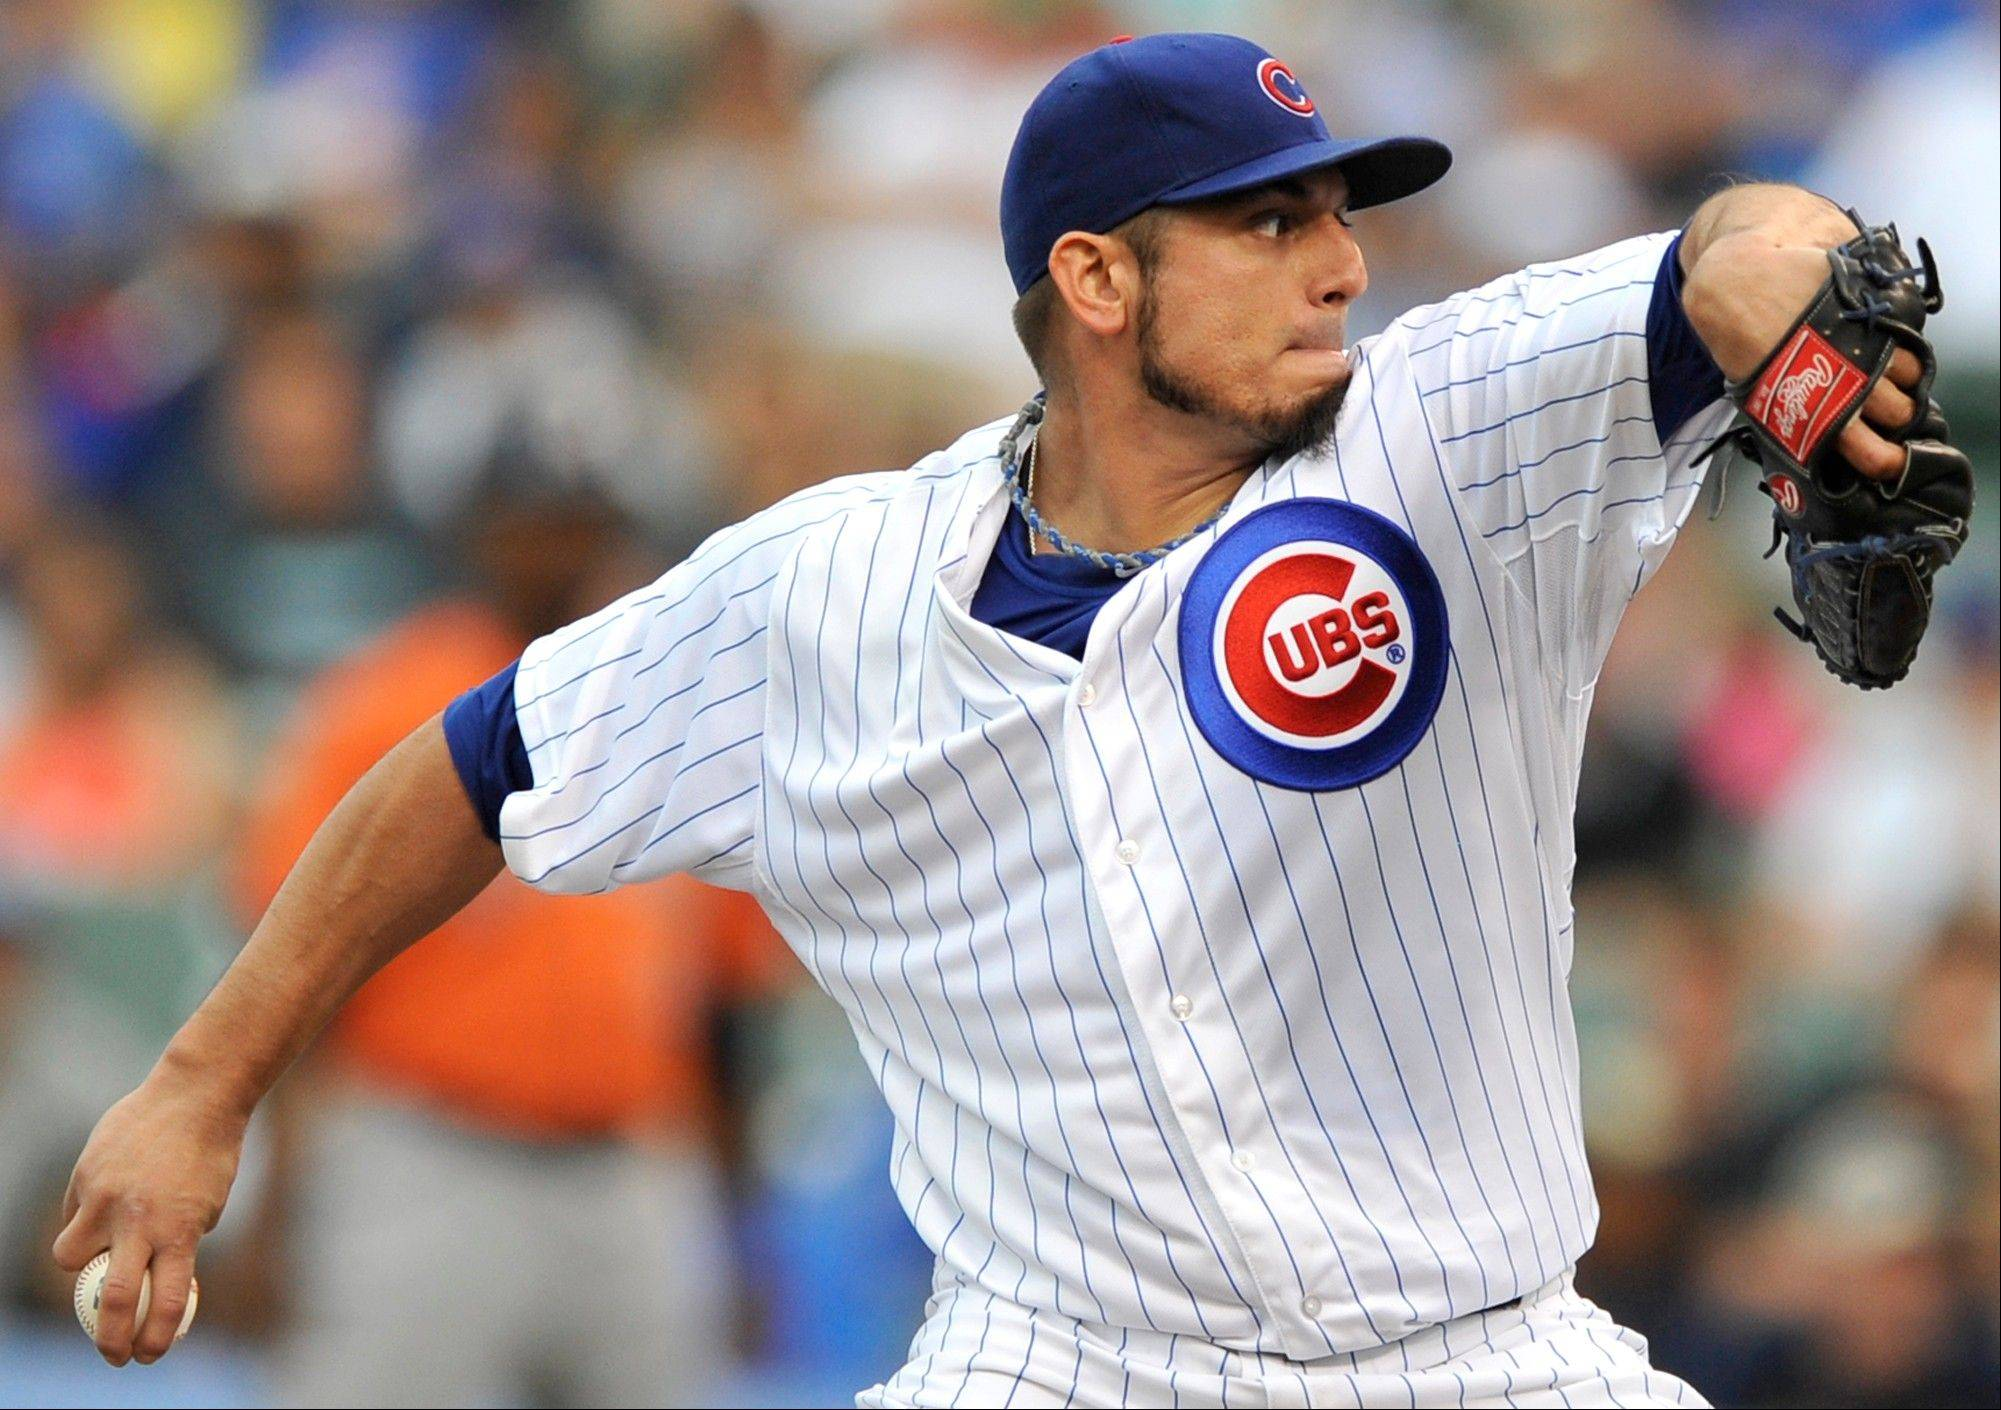 Chicago Cubs starter Matt Garza delivers a pitch during the first inning of a baseball game against the Houston Astros in Chicago, Friday, June 21, 2013. (AP Photo/Paul Beaty)